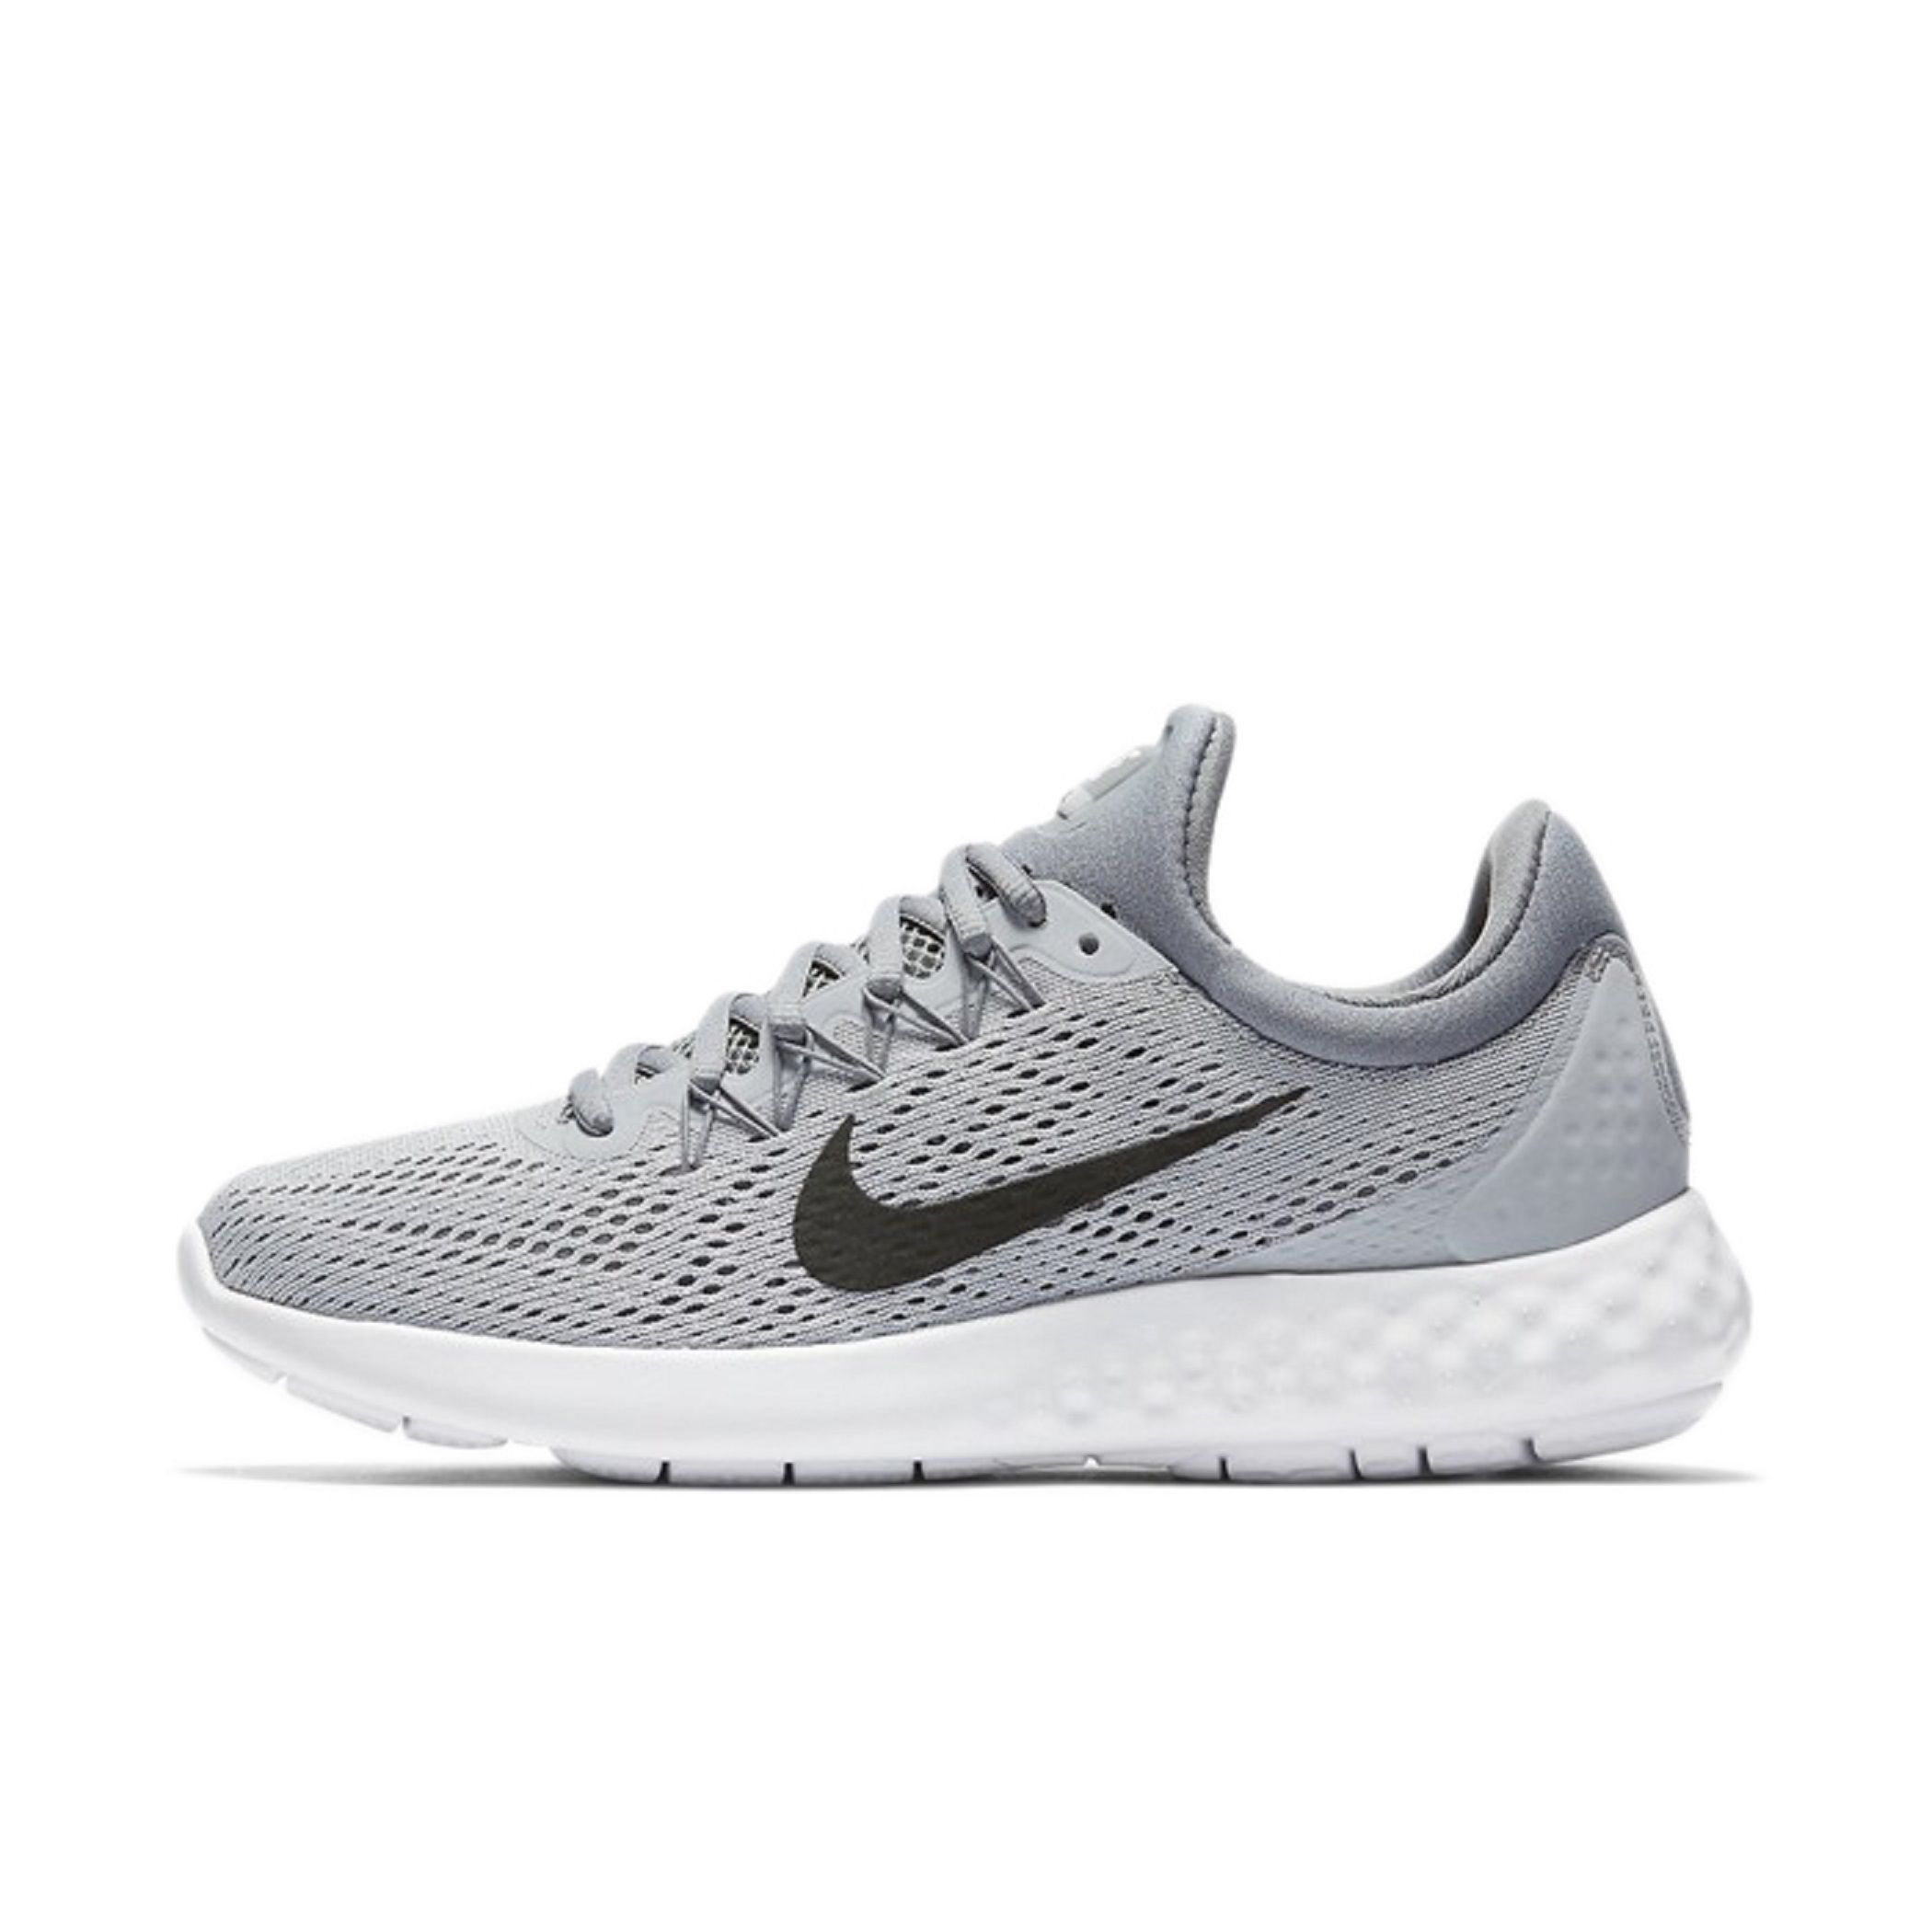 b448a1b86388b Nike Lunar Skyelux 2018 Gray Running Shoes - Buy Nike Lunar Skyelux 2018  Gray Running Shoes Online at Best Prices in India on Snapdeal